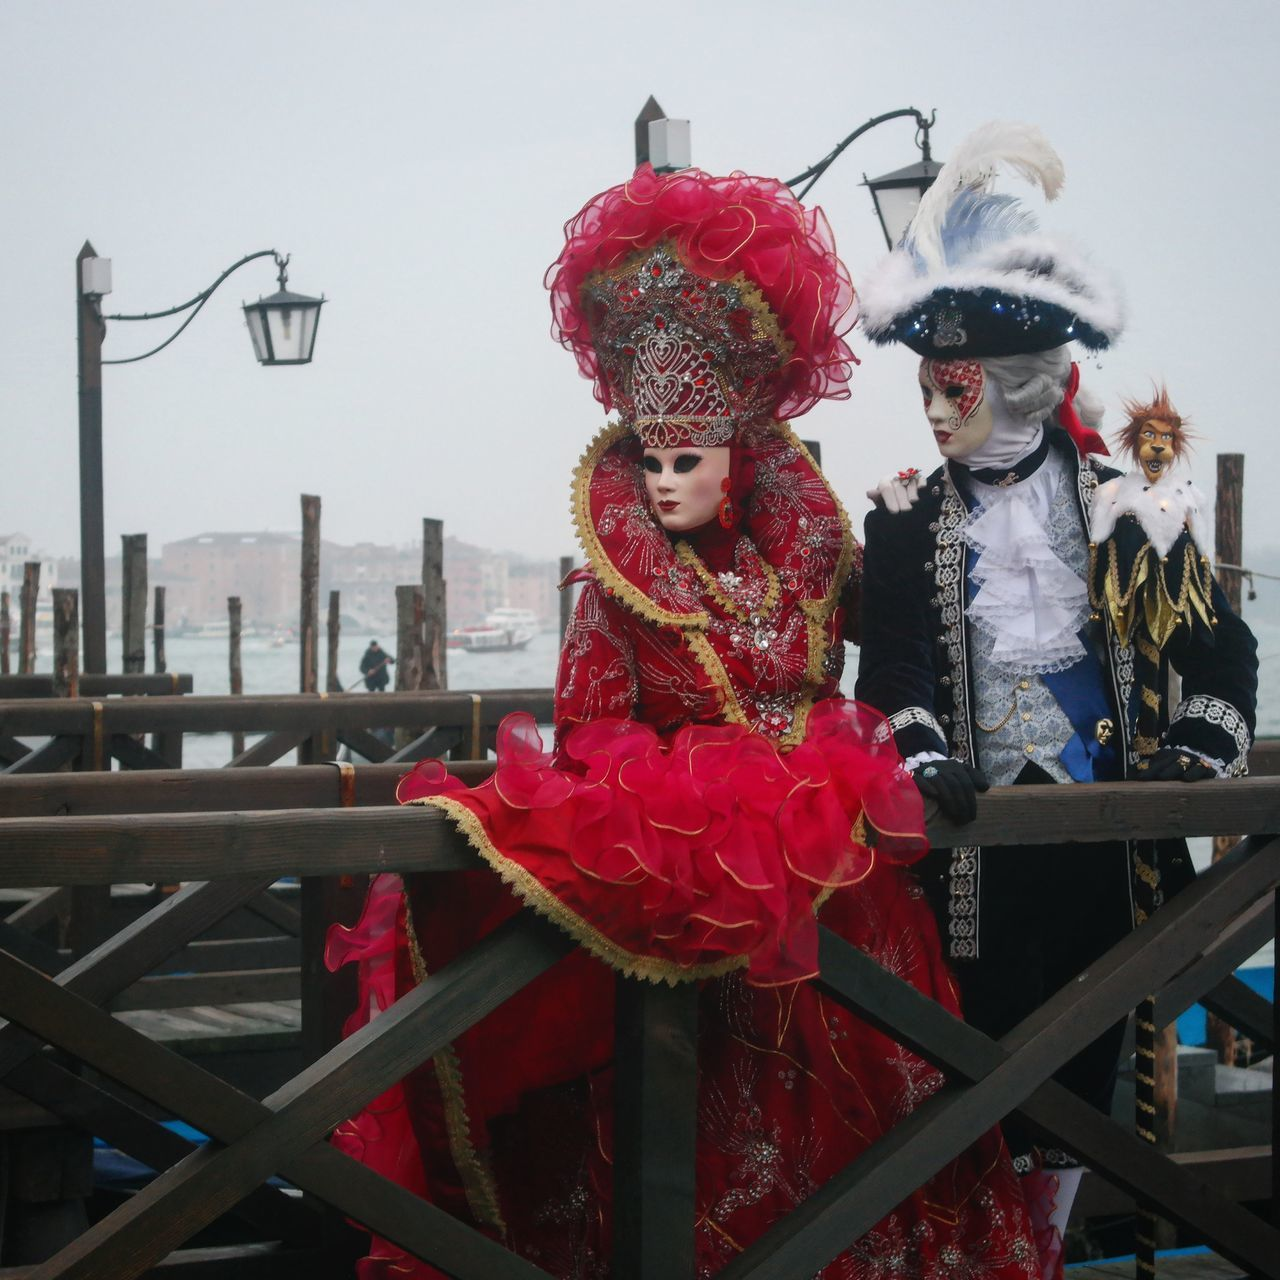 Mirrorless NX2000 Carnevaledivenezia Dress Contestgram Colors Of Carnival Venezia Gondola Red Mylady Picoftheday Igers Igersitalia Carnival Instagood Instalike Vogue